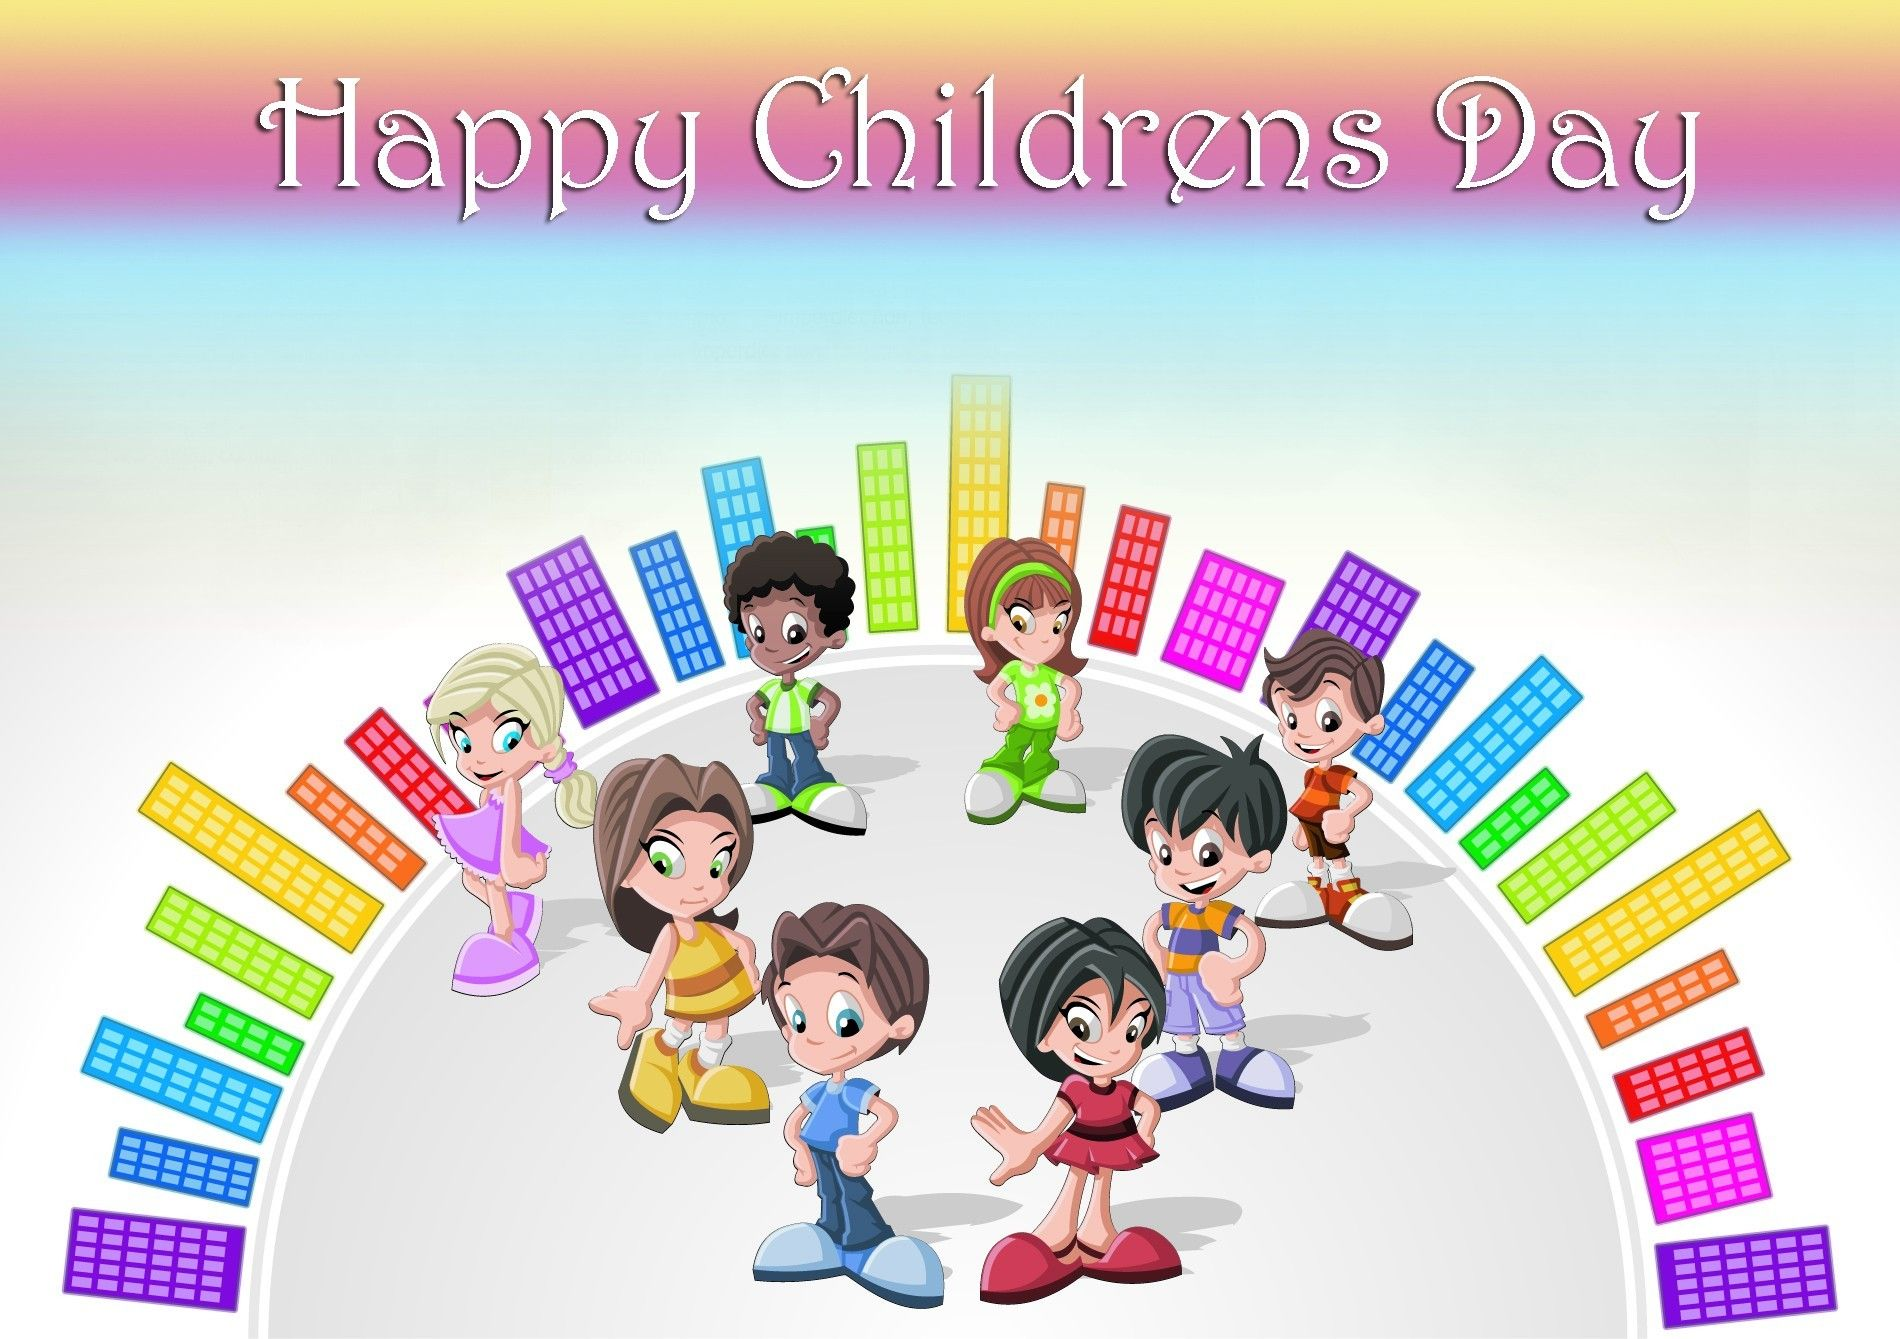 Happy Childrens day hd images | HD Wallpapers | Happy children's day, Children's  day wishes, Children's day